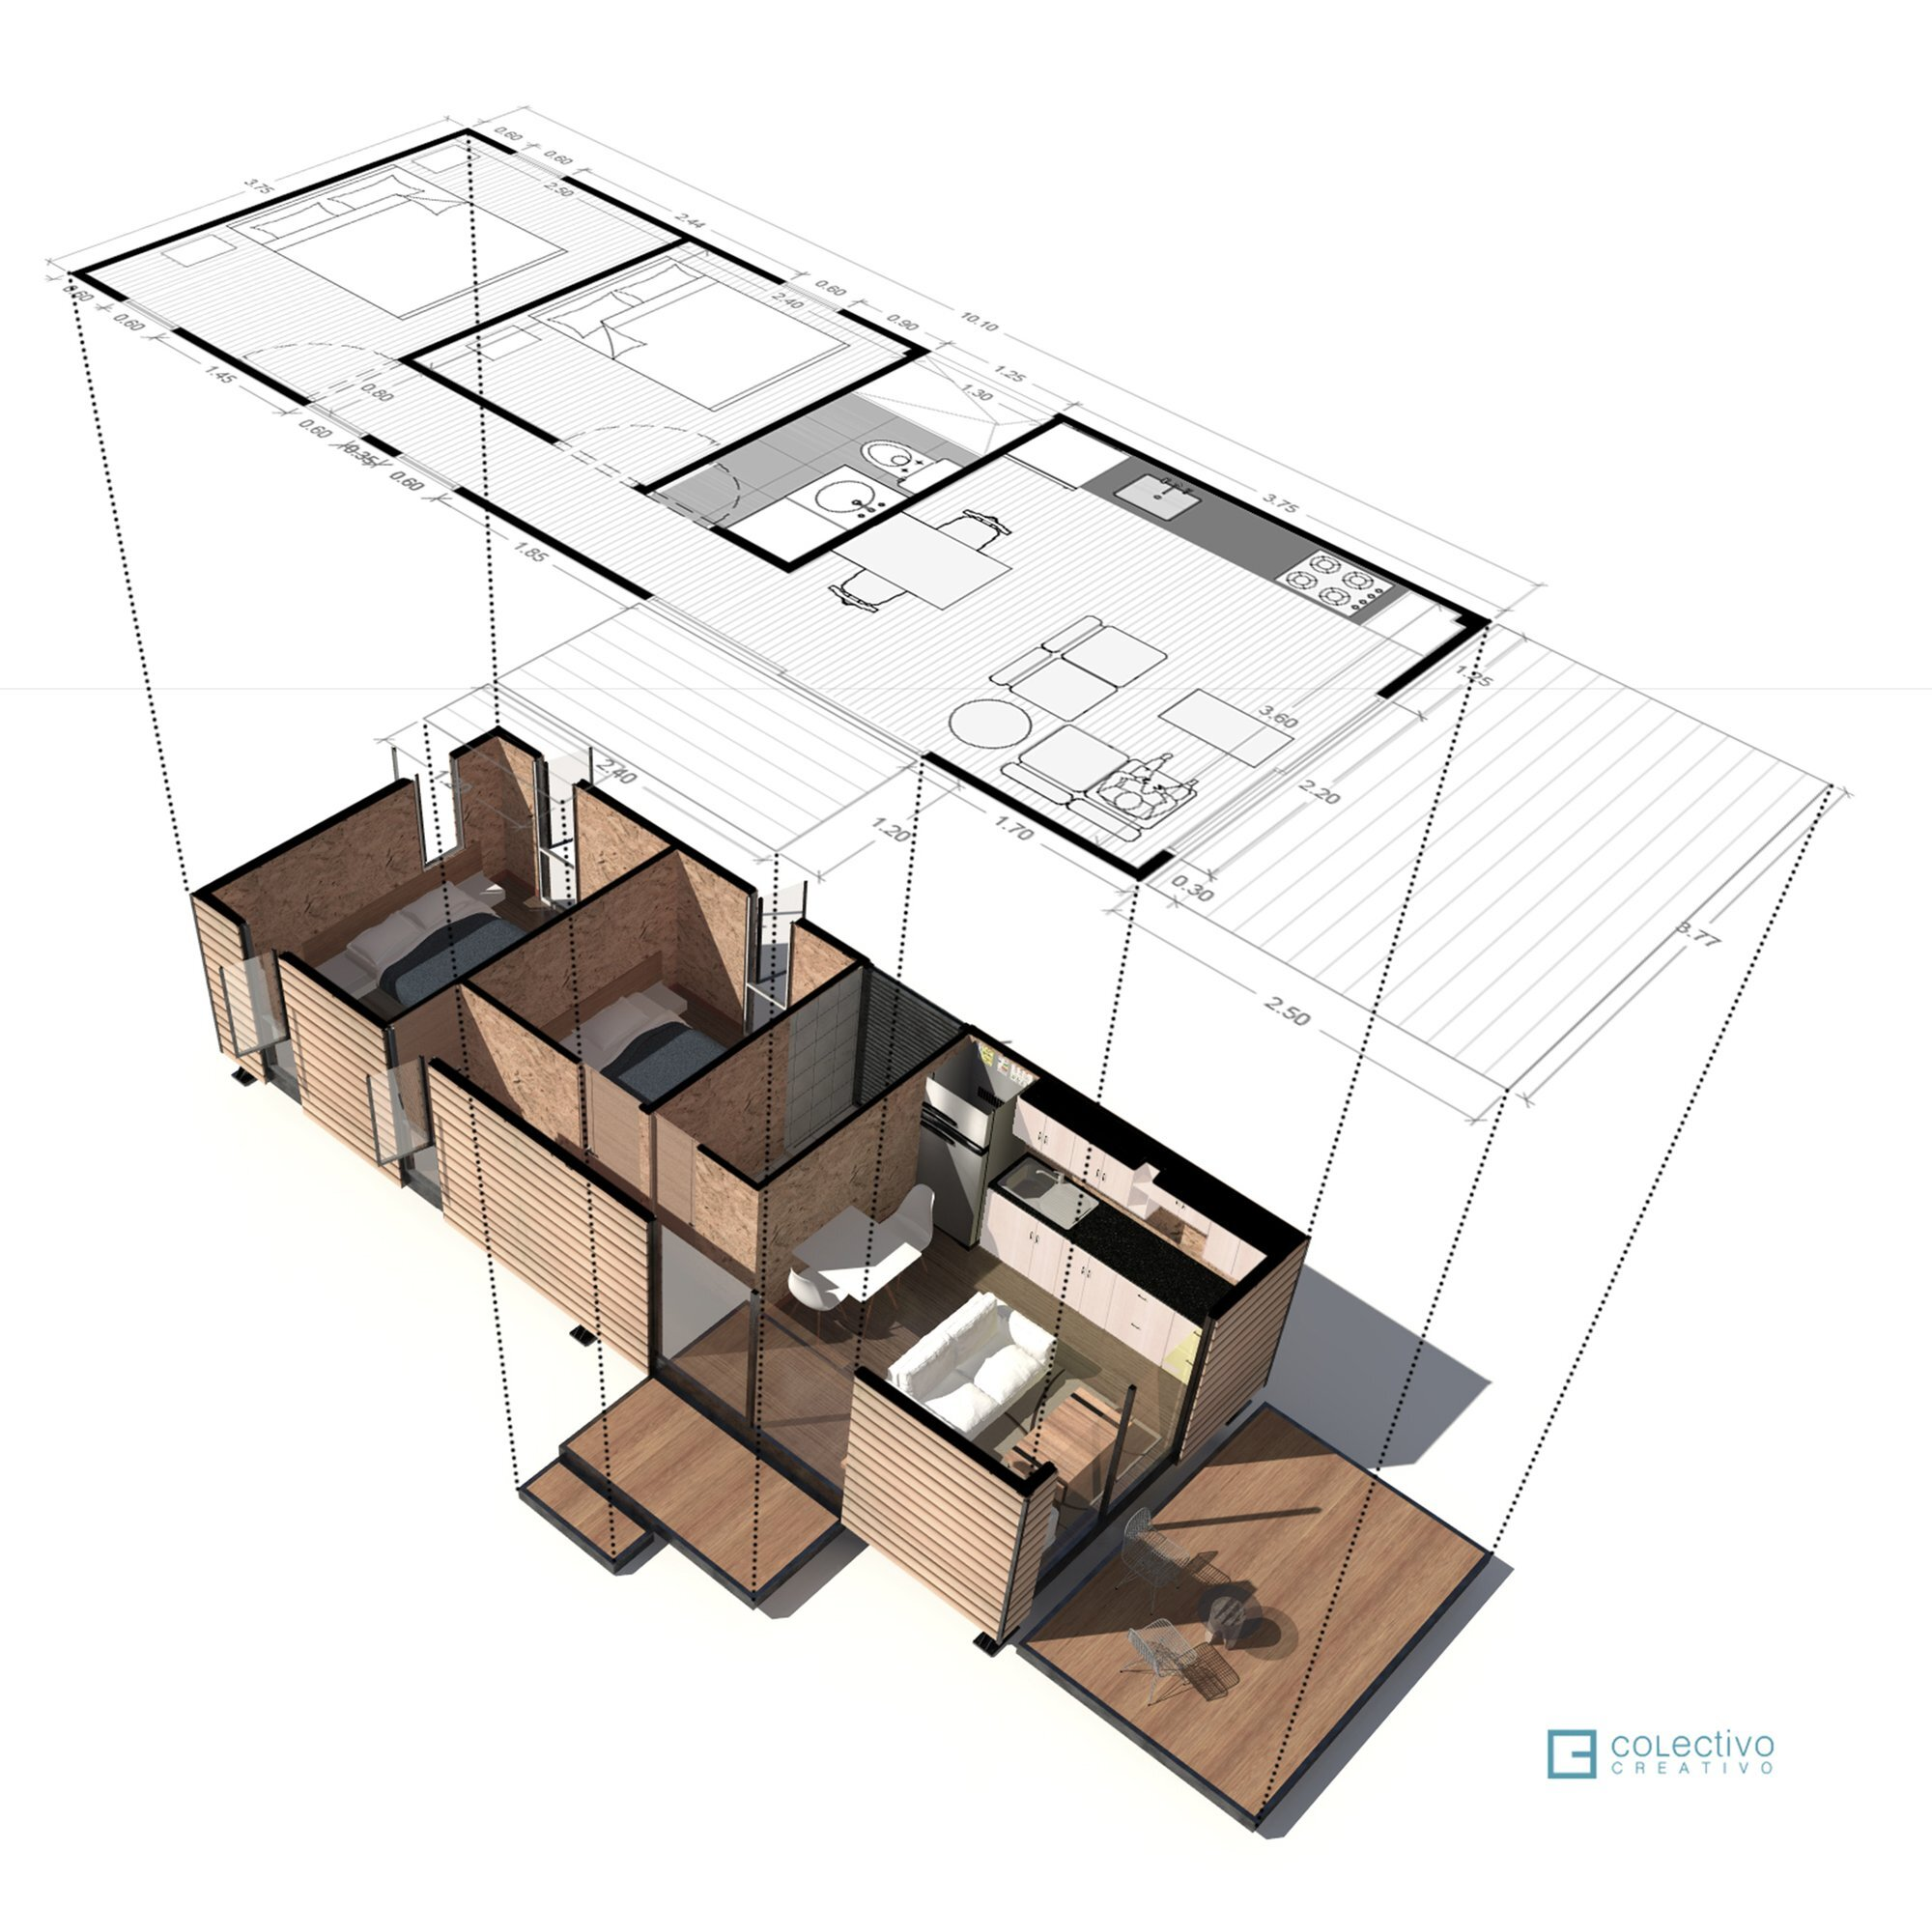 VIMOB - Colectivo Creativo Arquitectos - Columbia - Floor Plan - Humble Homes